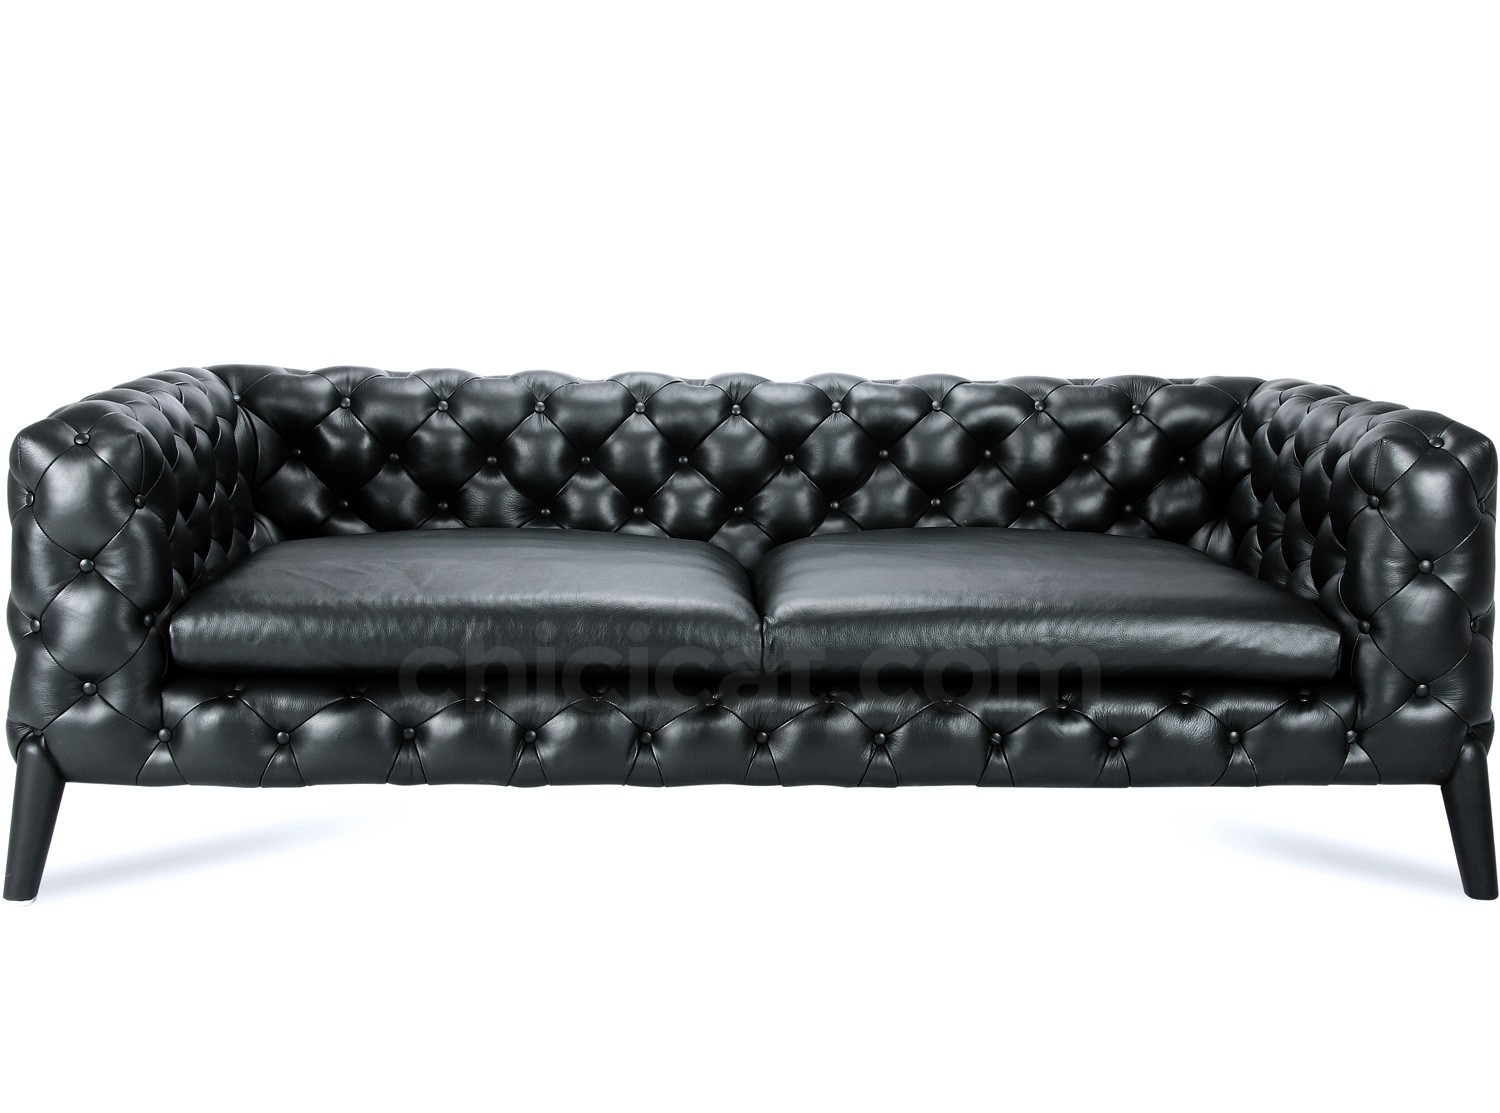 Bon Windsor Chesterfield Sofa 2 Seater (Replica)